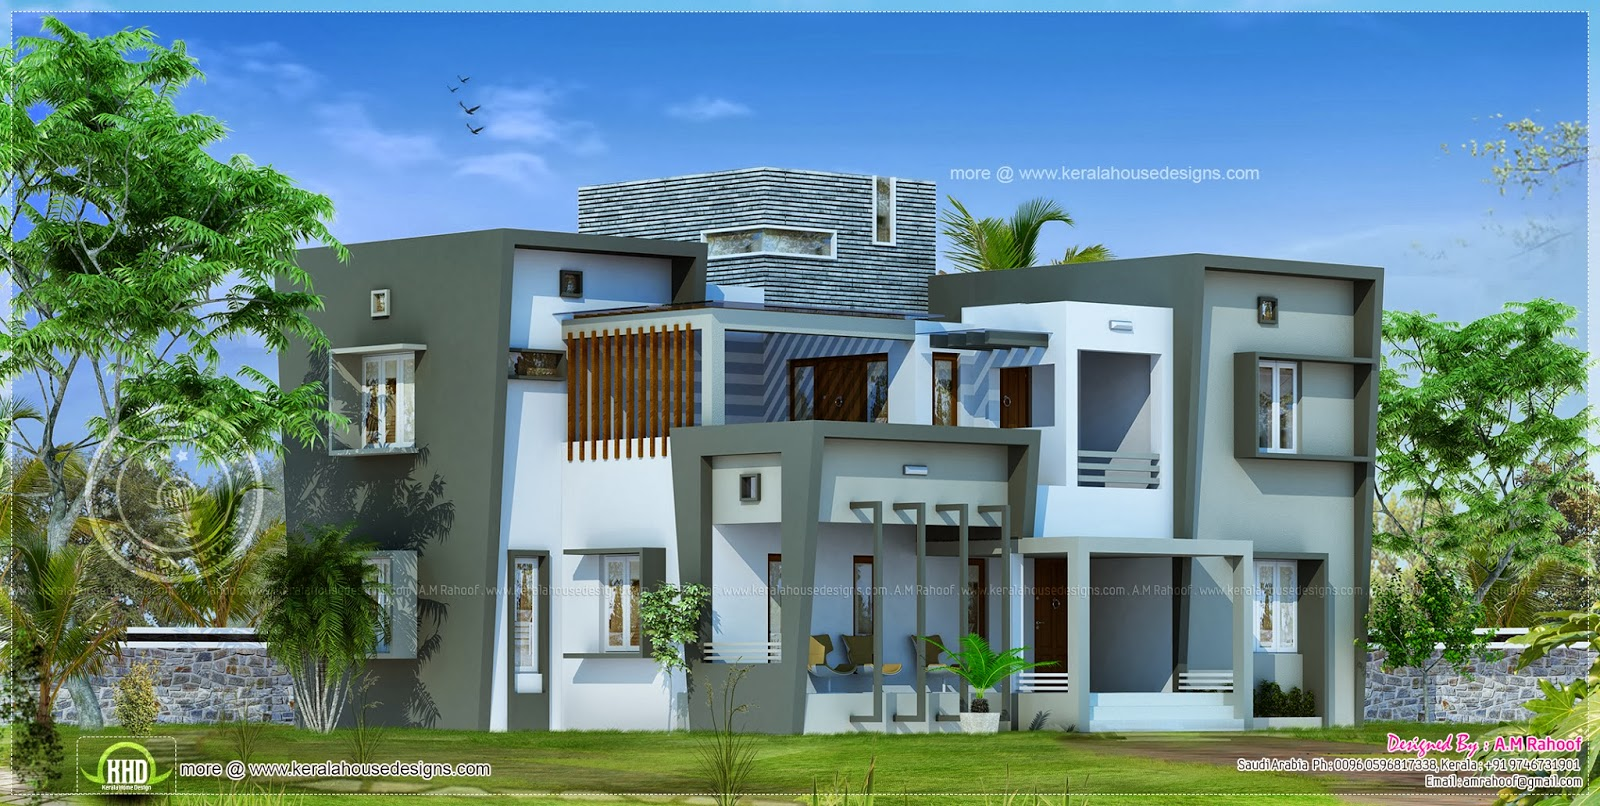 Modern house design in 2850 square feet home kerala plans Indian modern home design images